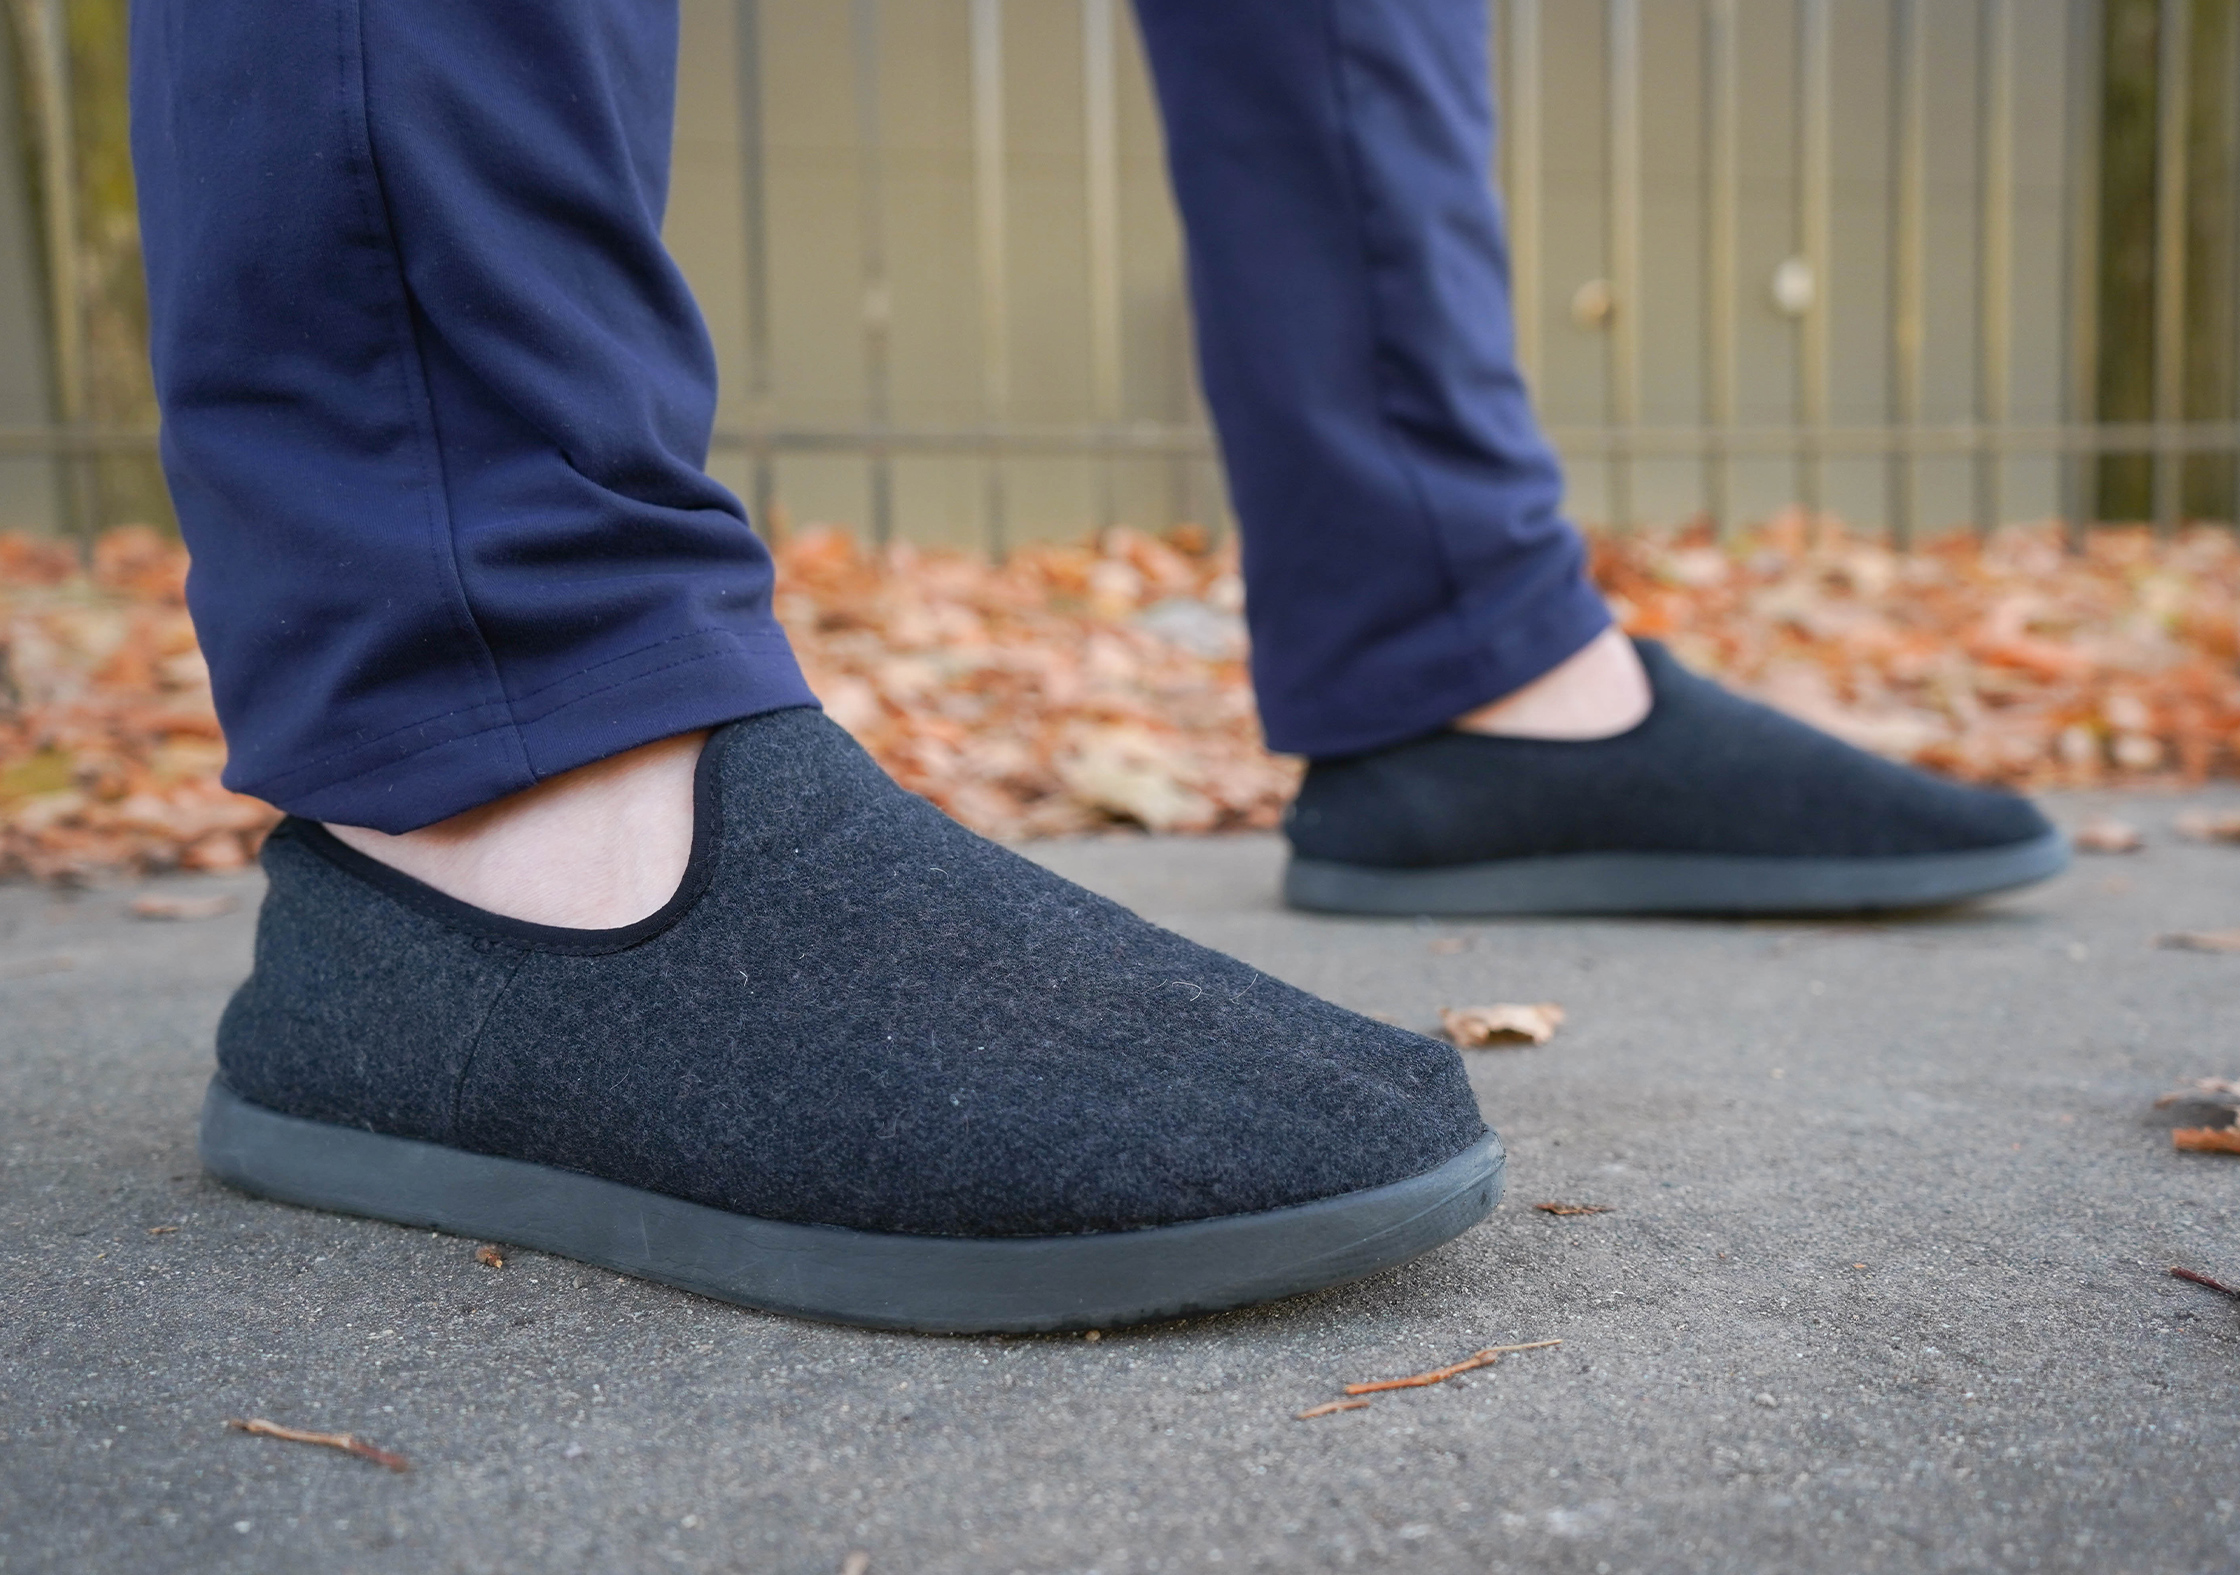 Allbirds Wool Loungers In Detroit